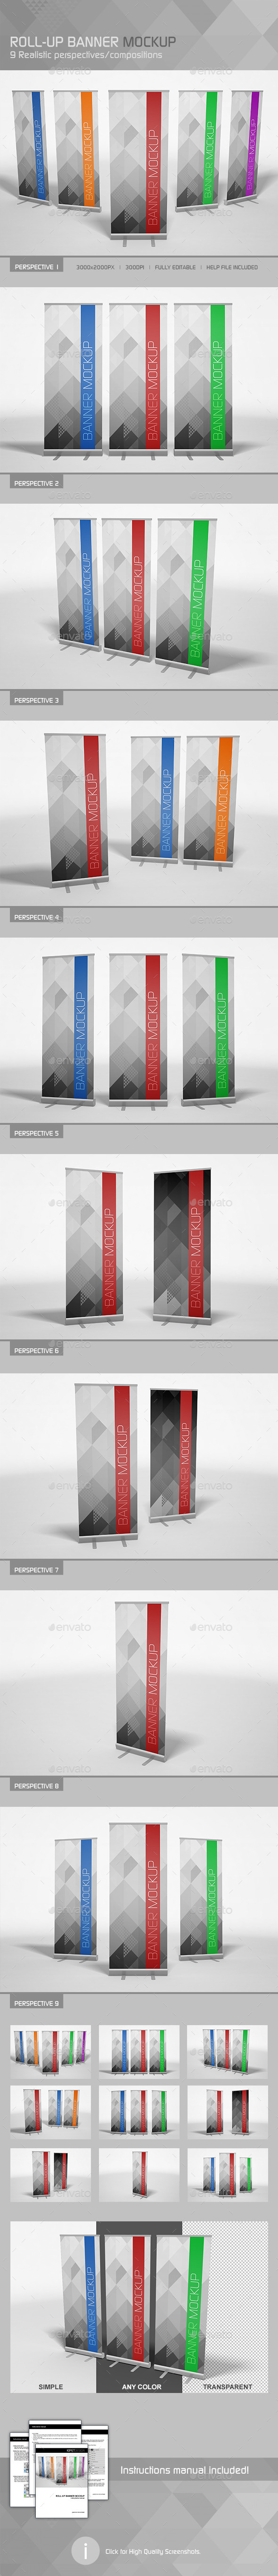 Realistic Roll-up Banner Mockup